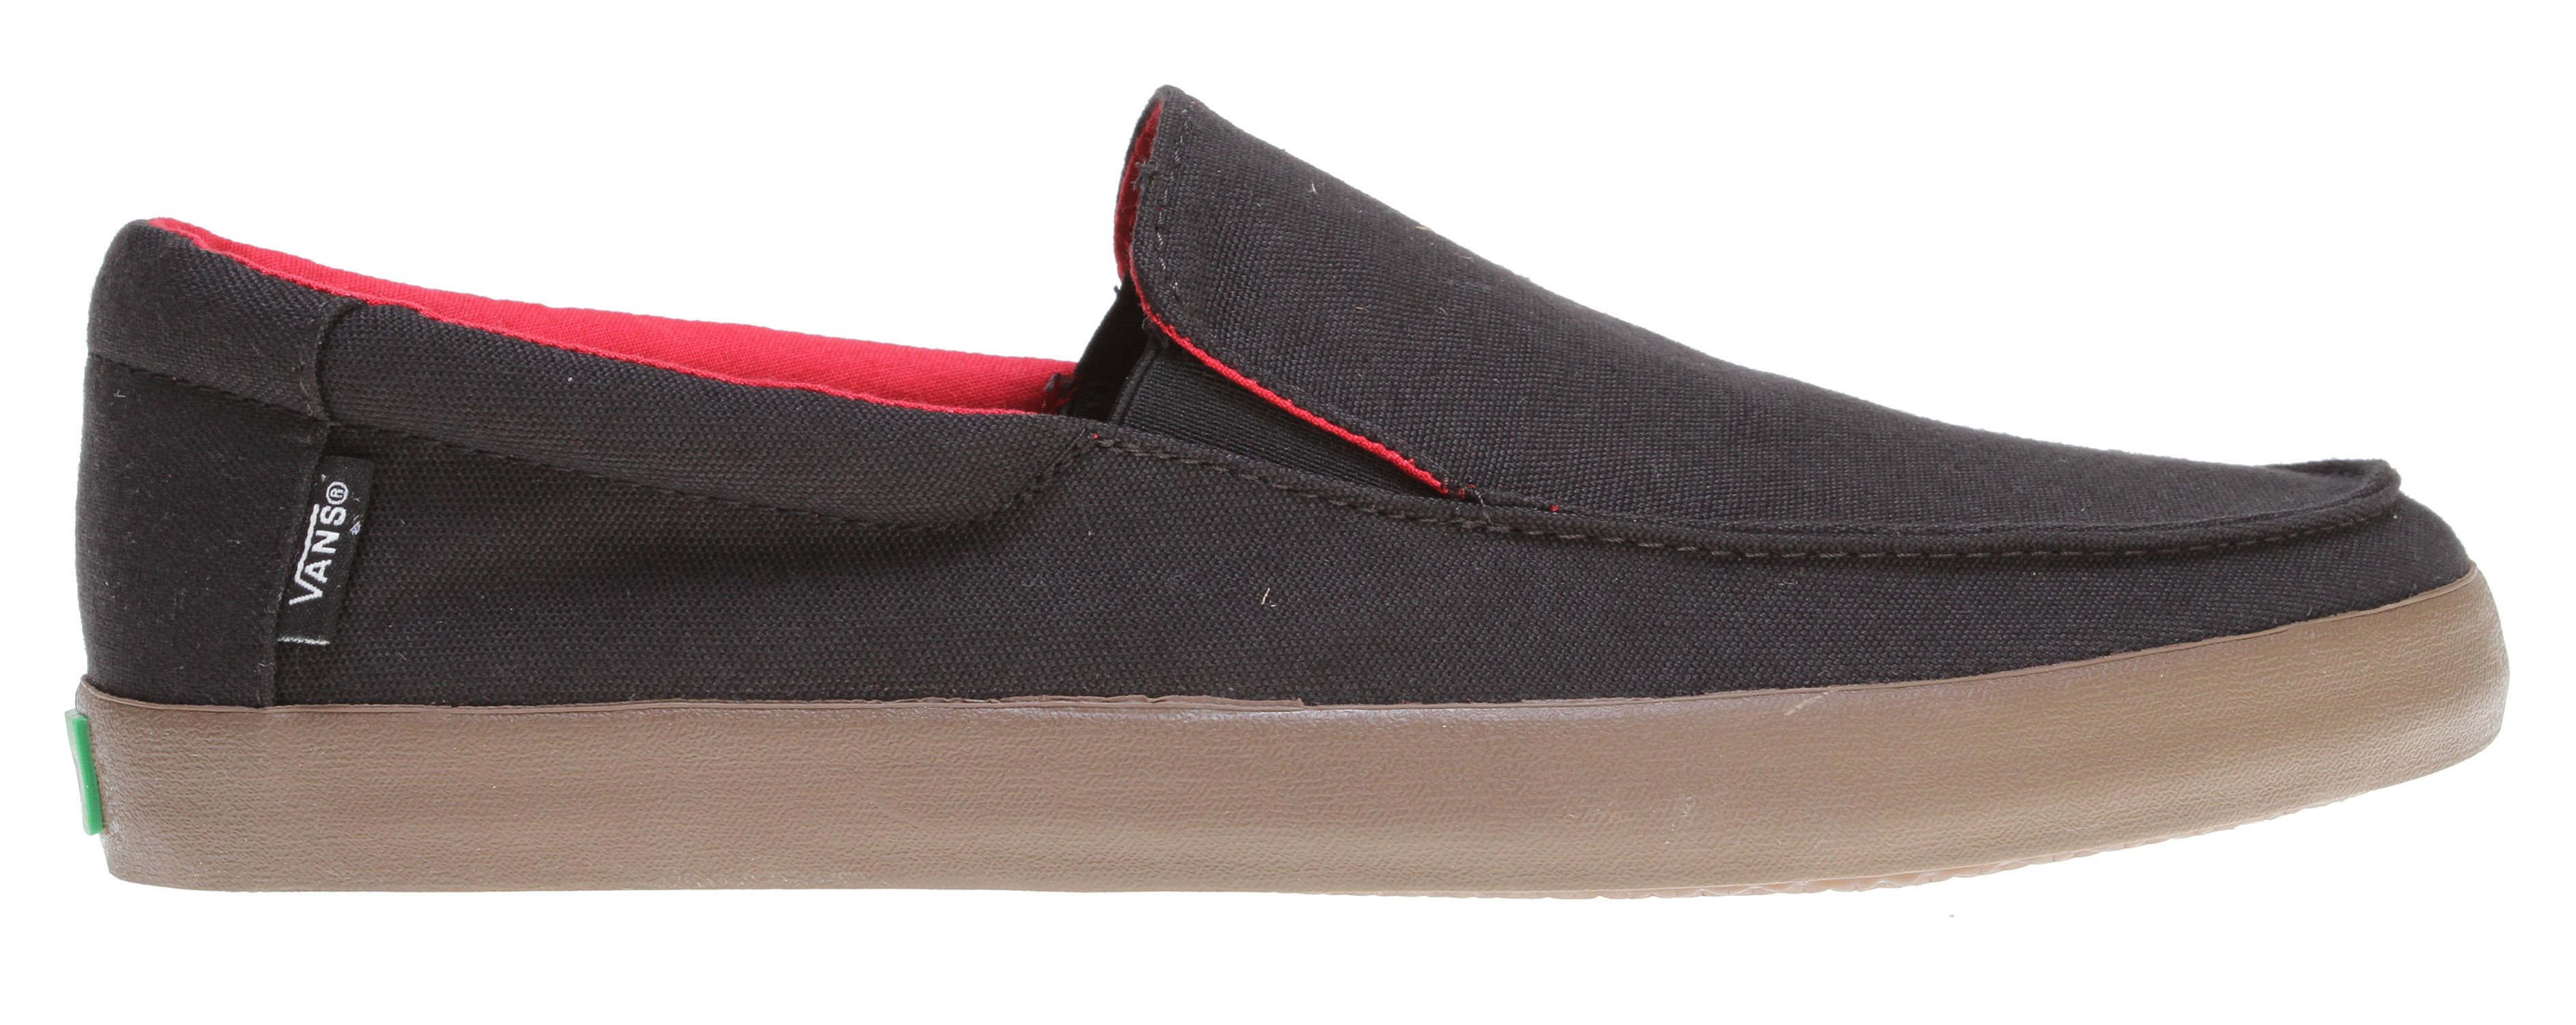 Skateboard Key Features of the Vans Bali Skate Shoes: Recycled Pet, Canvas, Hemp or Premium Suede uppers Soft fleece or flannel liner on suede styles Super comfy Vanslite Footbed Flexi vulc gum rubber outsole Waterbased inks and glues Easy fit style - $41.95